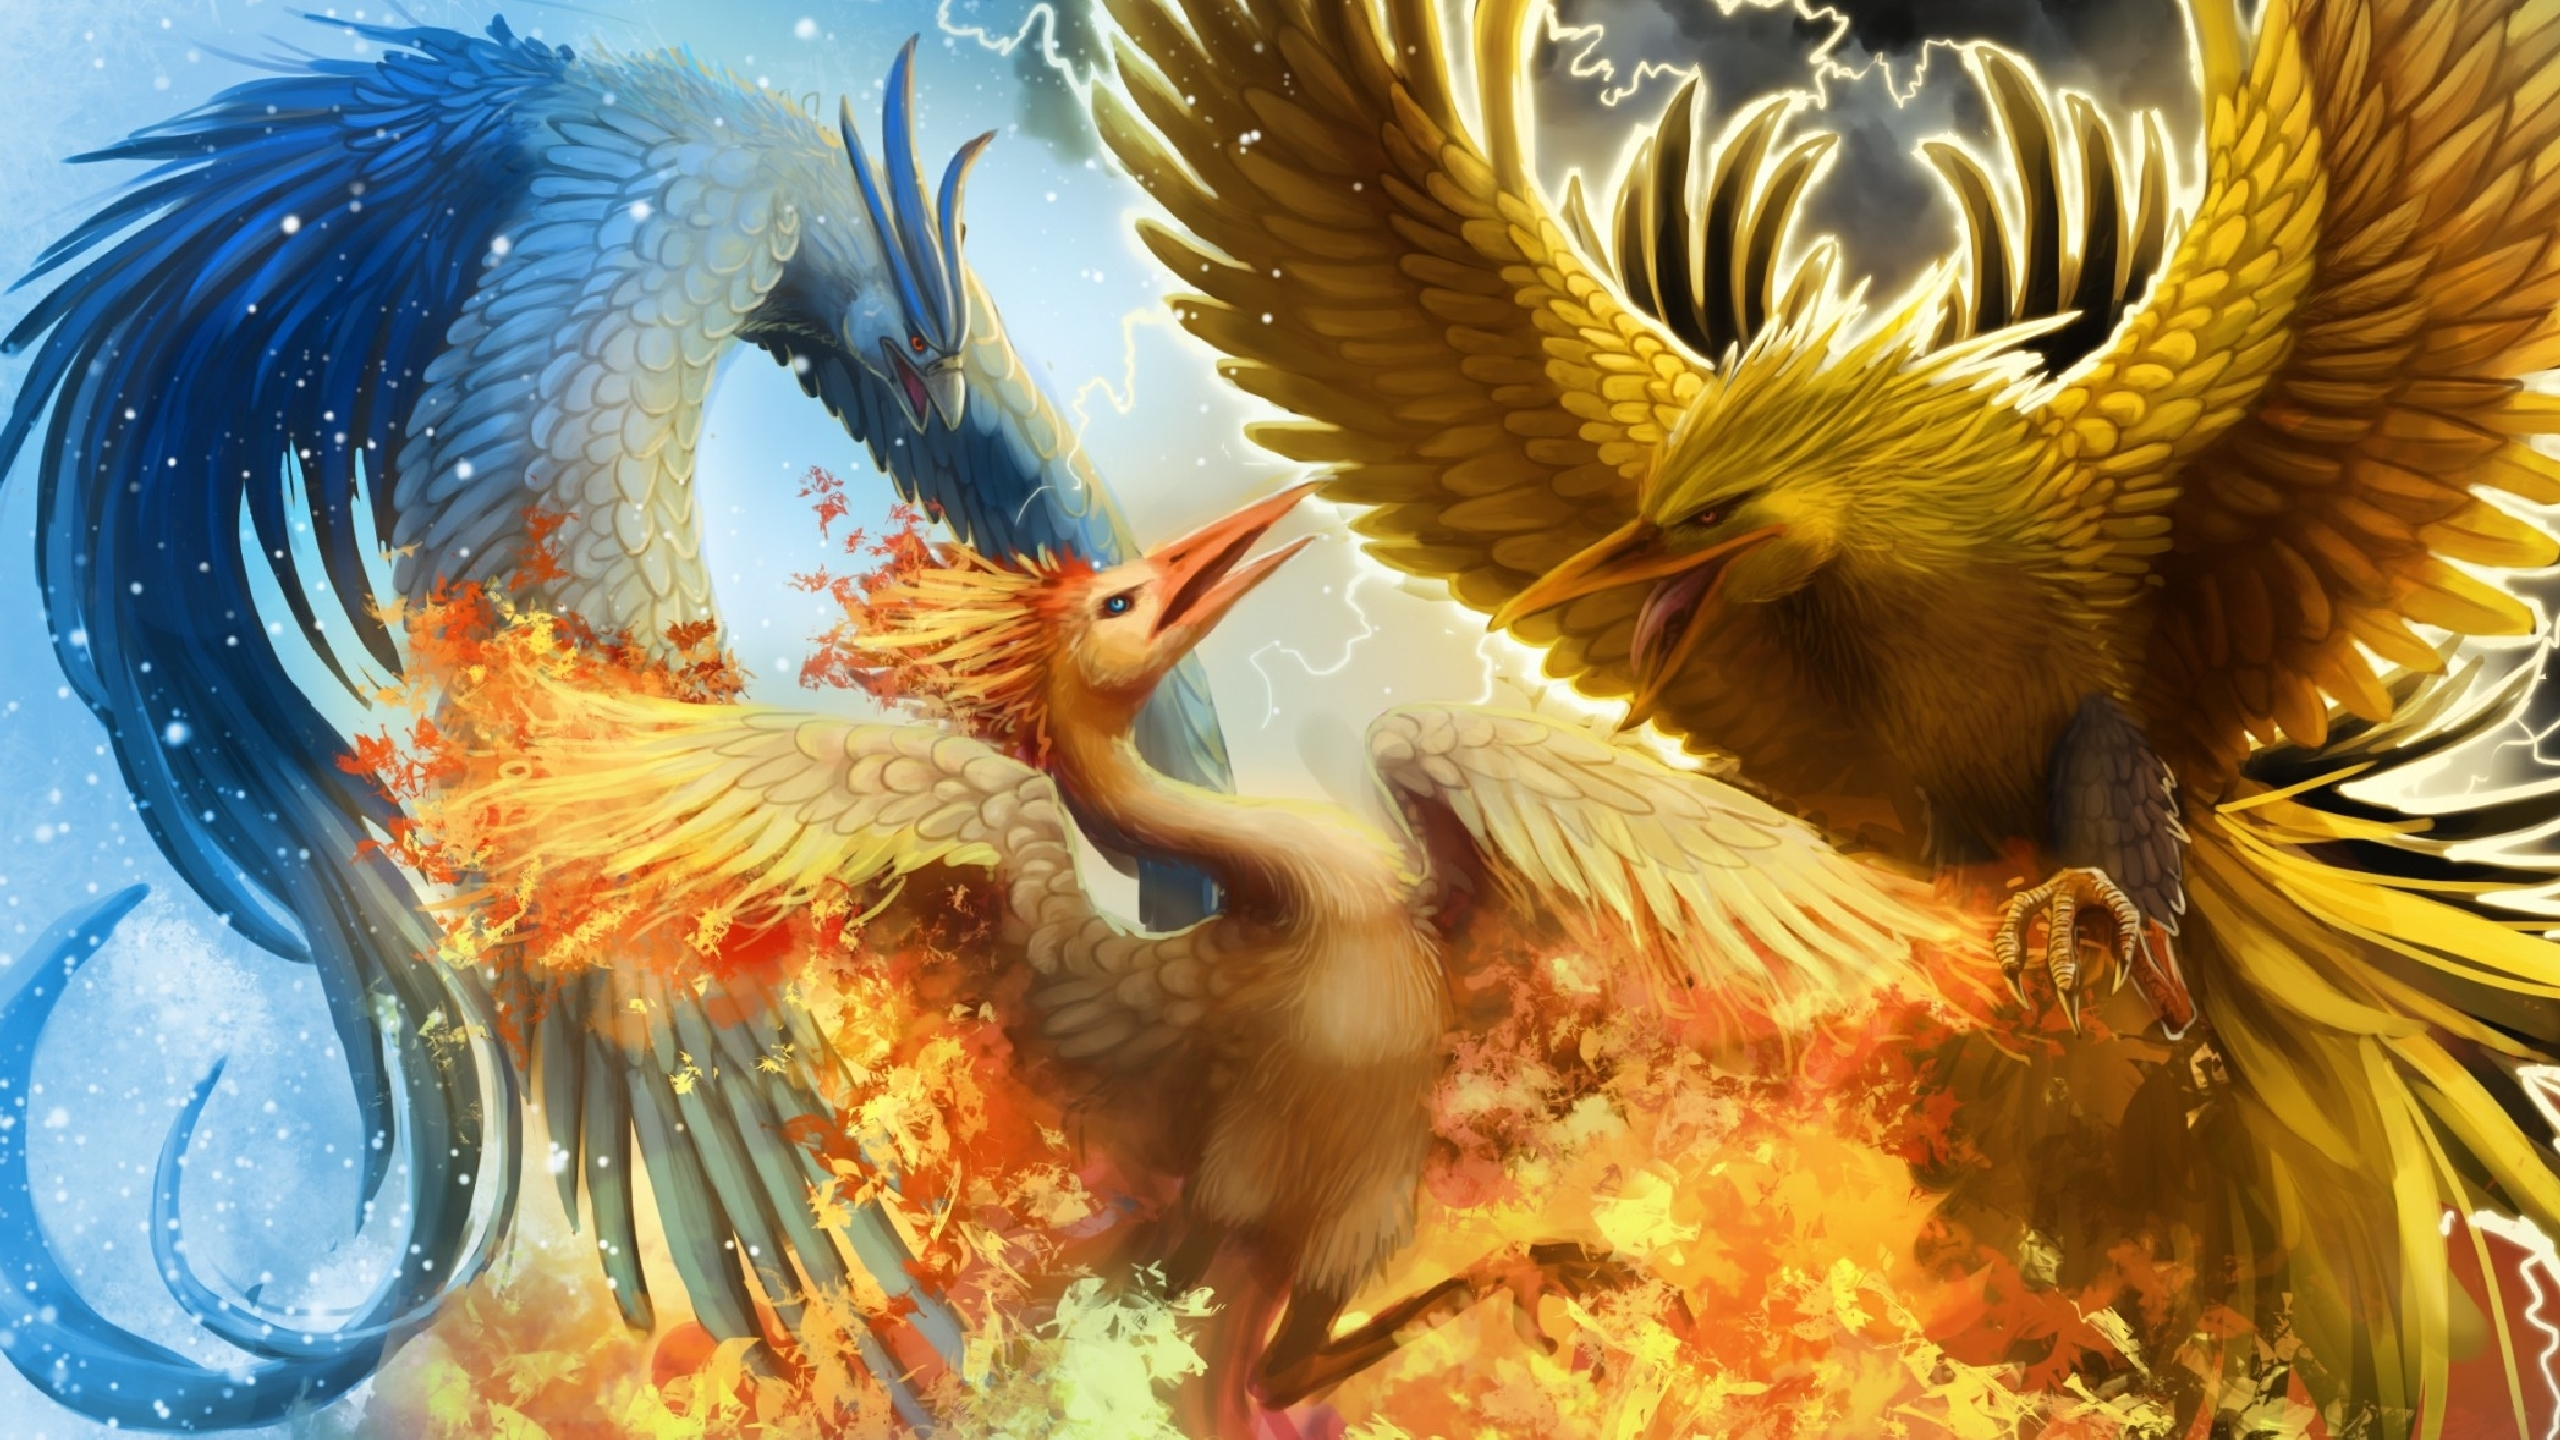 legendary birds articuno, zapdos, and moltres full hd wallpaper and